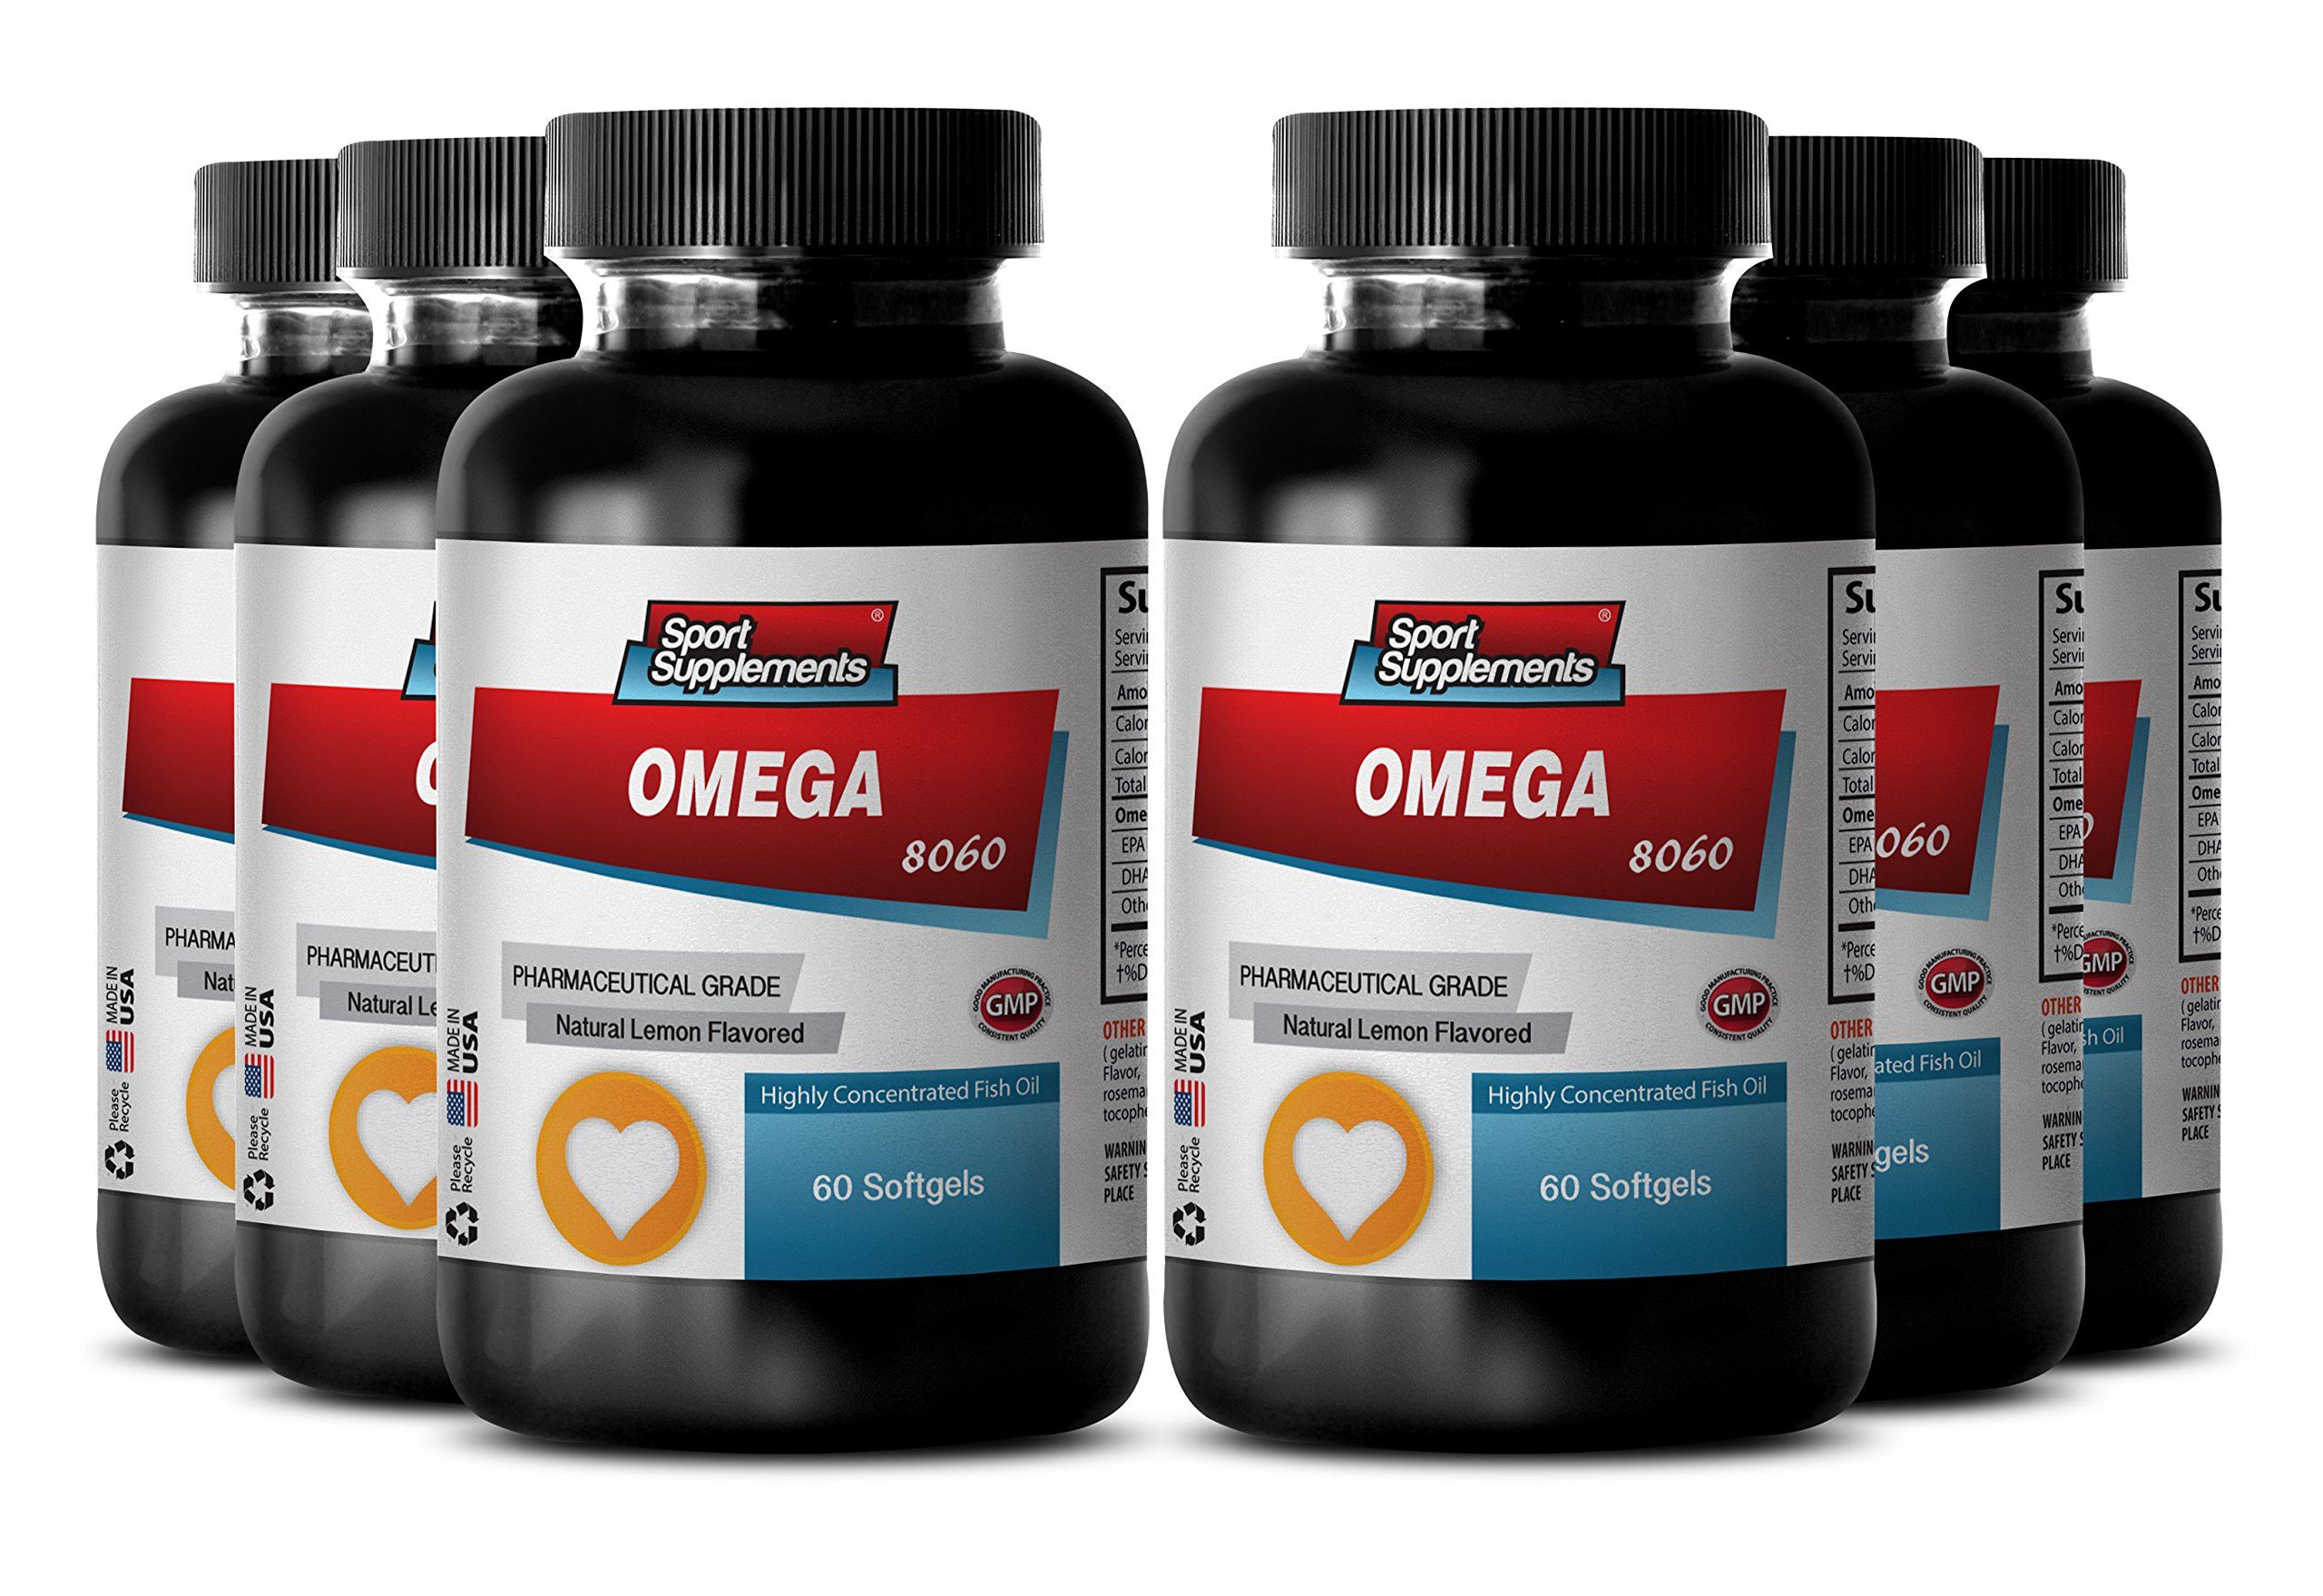 Omega 3 Softgels - Omega 8060 - Fish Oil for Weight Loss (6 Bottles, 360 Softgels)